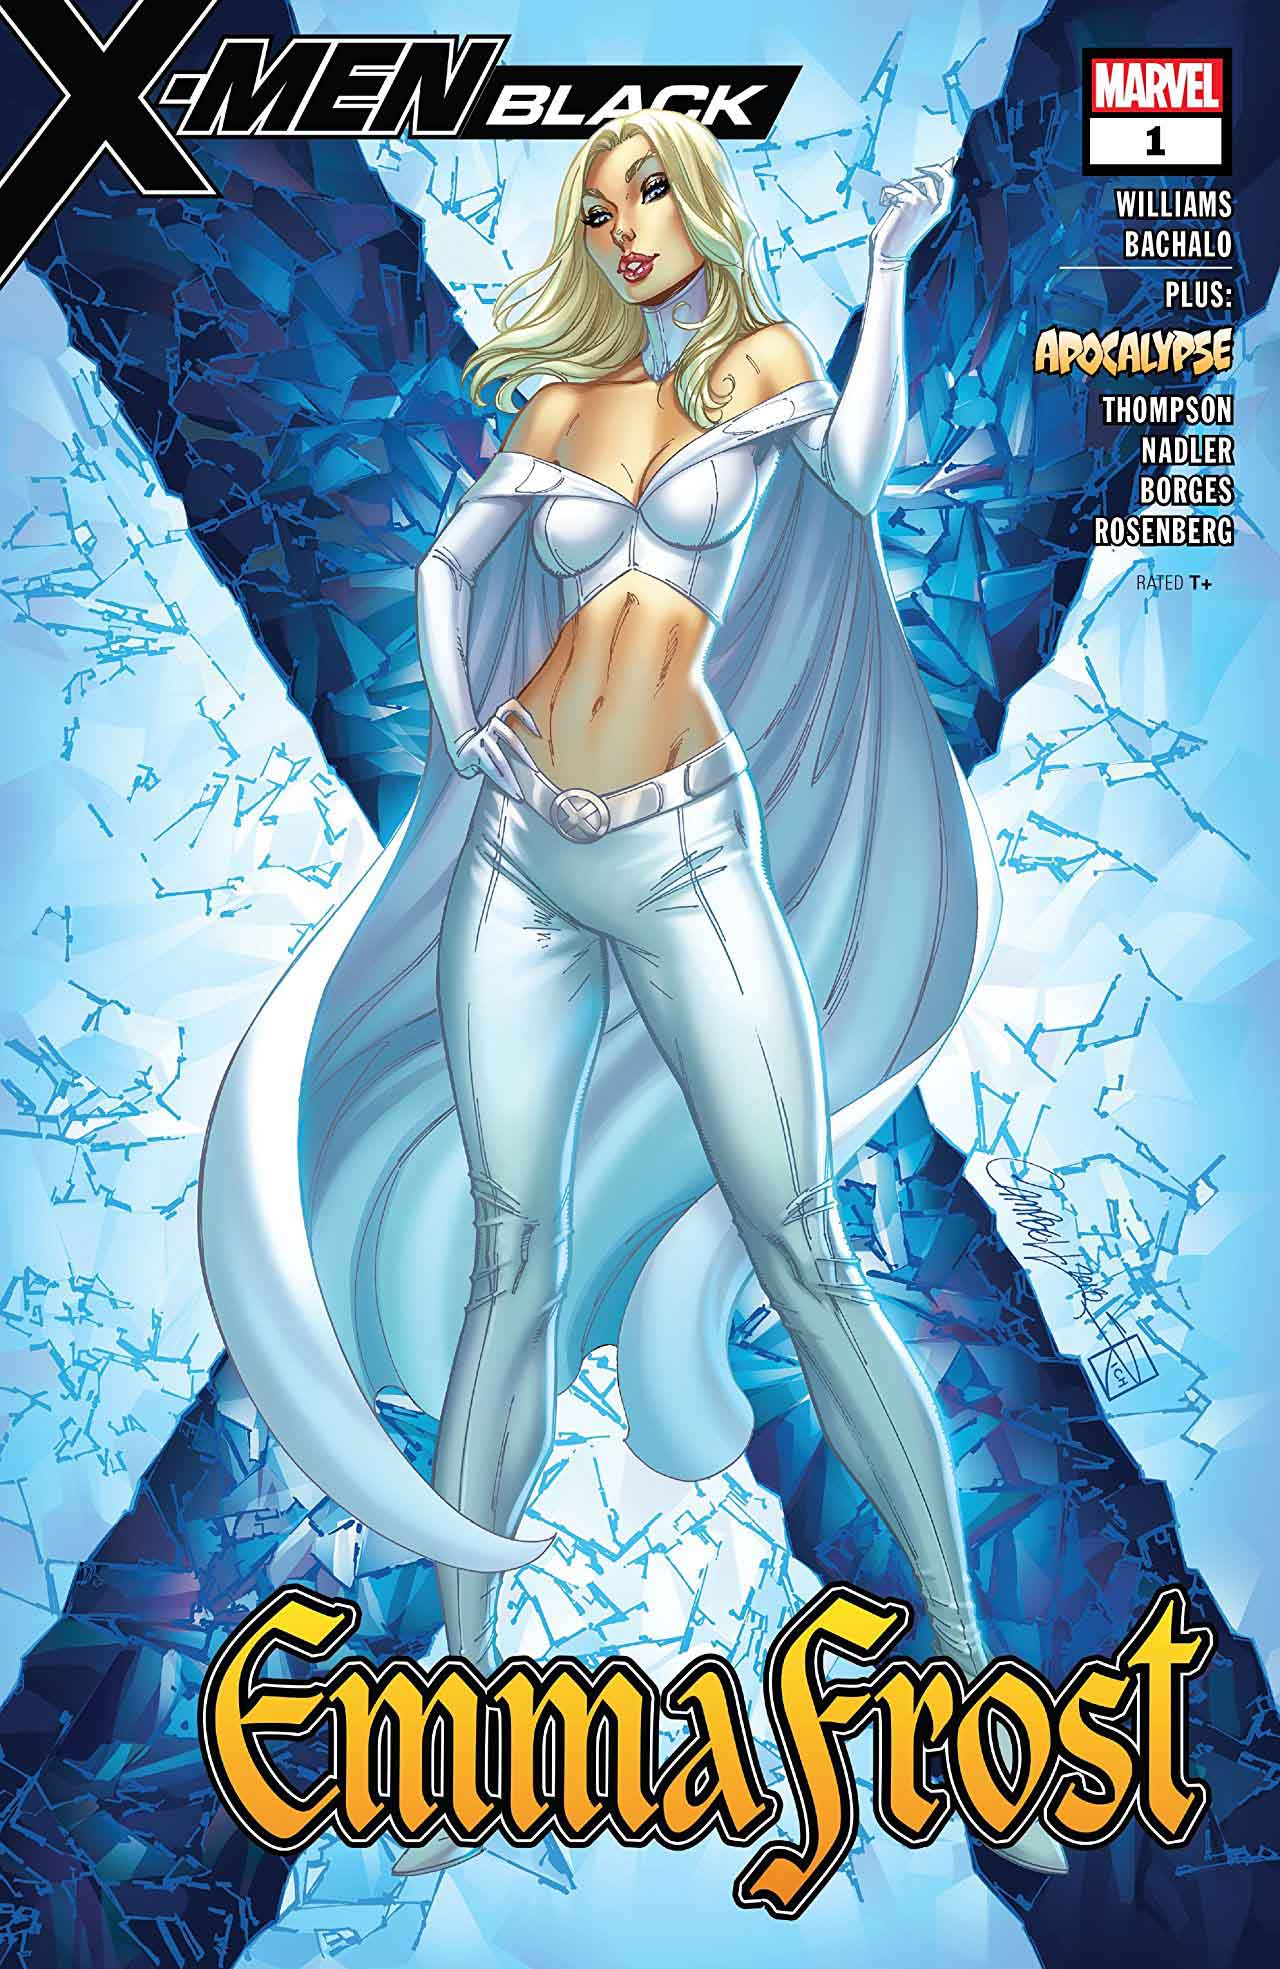 X-Men: Black - Emma Frost